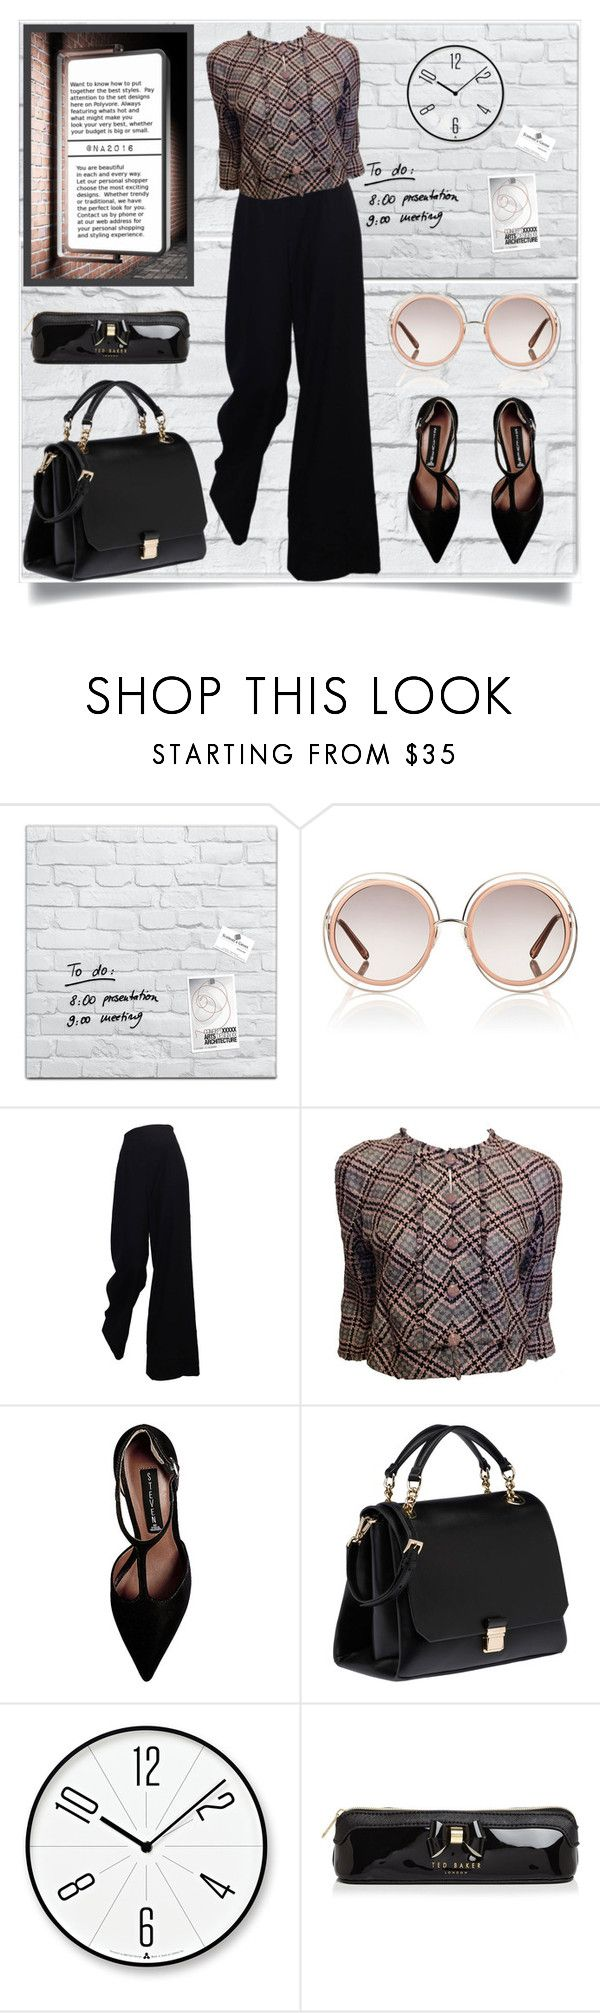 """MEETING"" by menina-ana ❤ liked on Polyvore featuring Chloé, The Row, Chanel, Steve Madden, Miu Miu, Lemnos and Ted Baker"